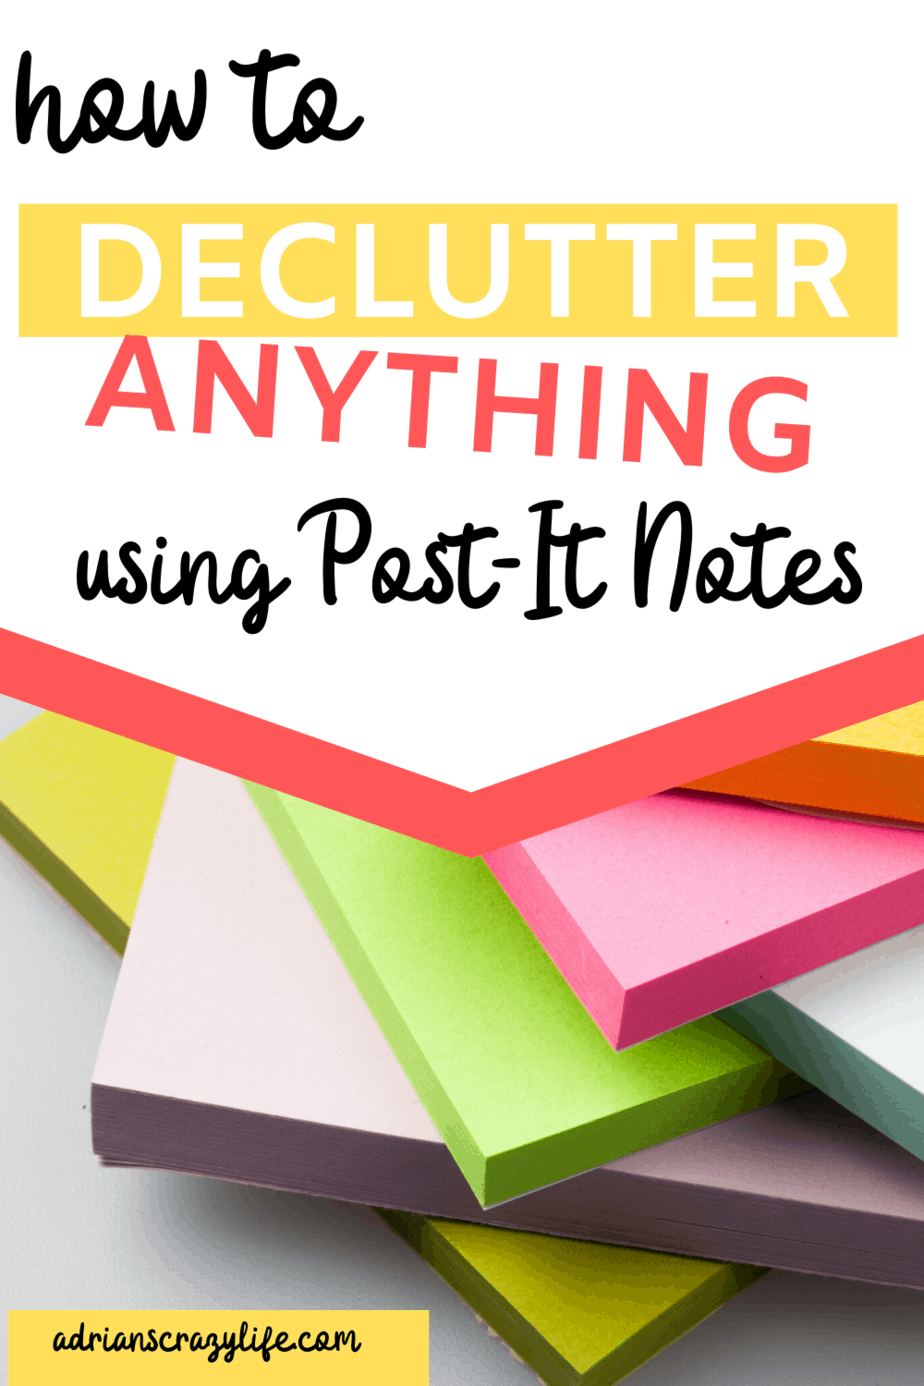 How to Declutter Anything with Post-It Notes